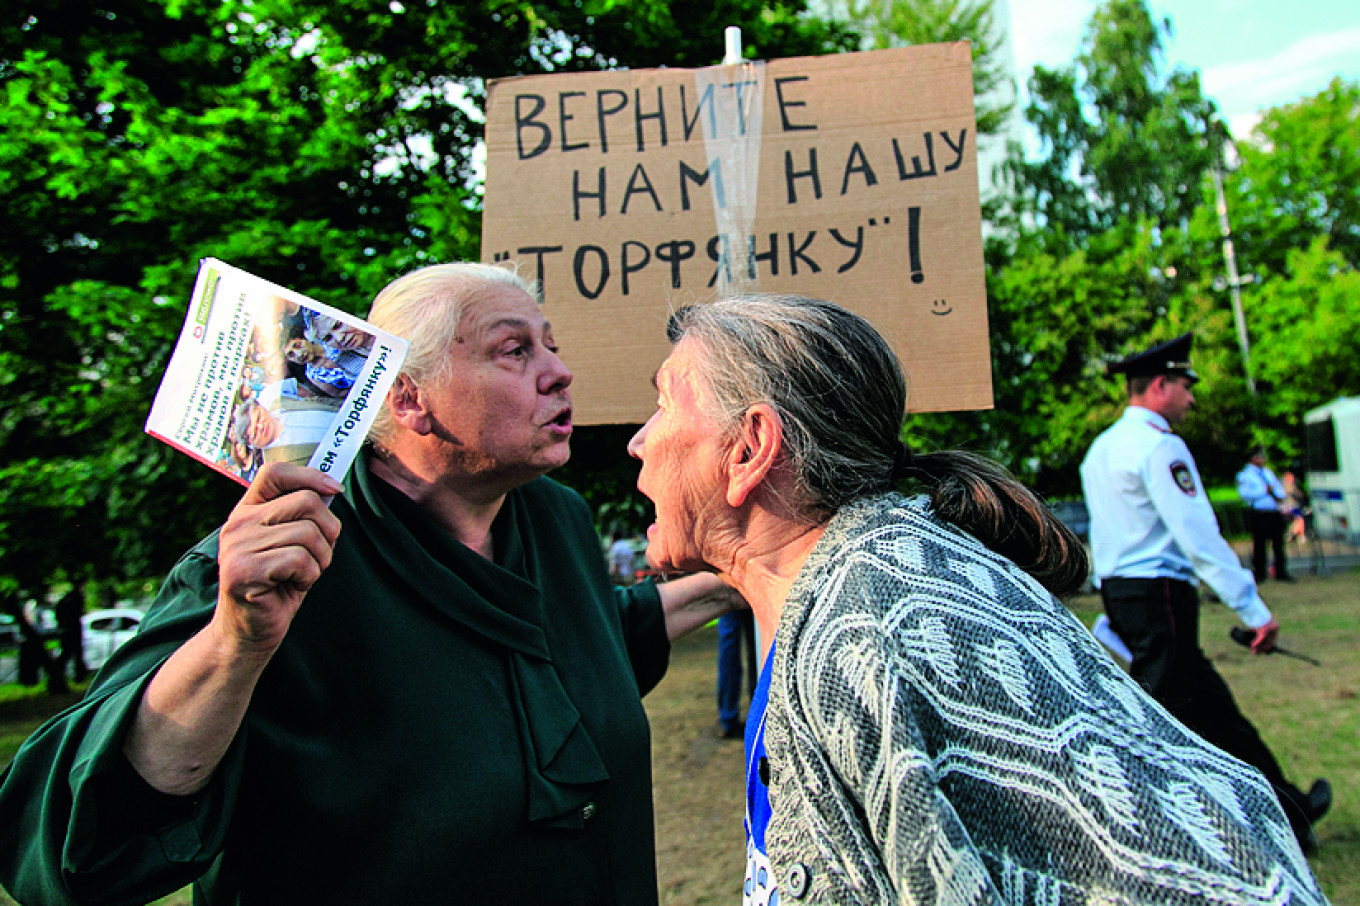 """Many Muscovites have not welcomed the Church's expansion boom, especially in parks. The sign says: """"Give us back our Torfyanka!"""" Artur Novosiltsev / TASS"""